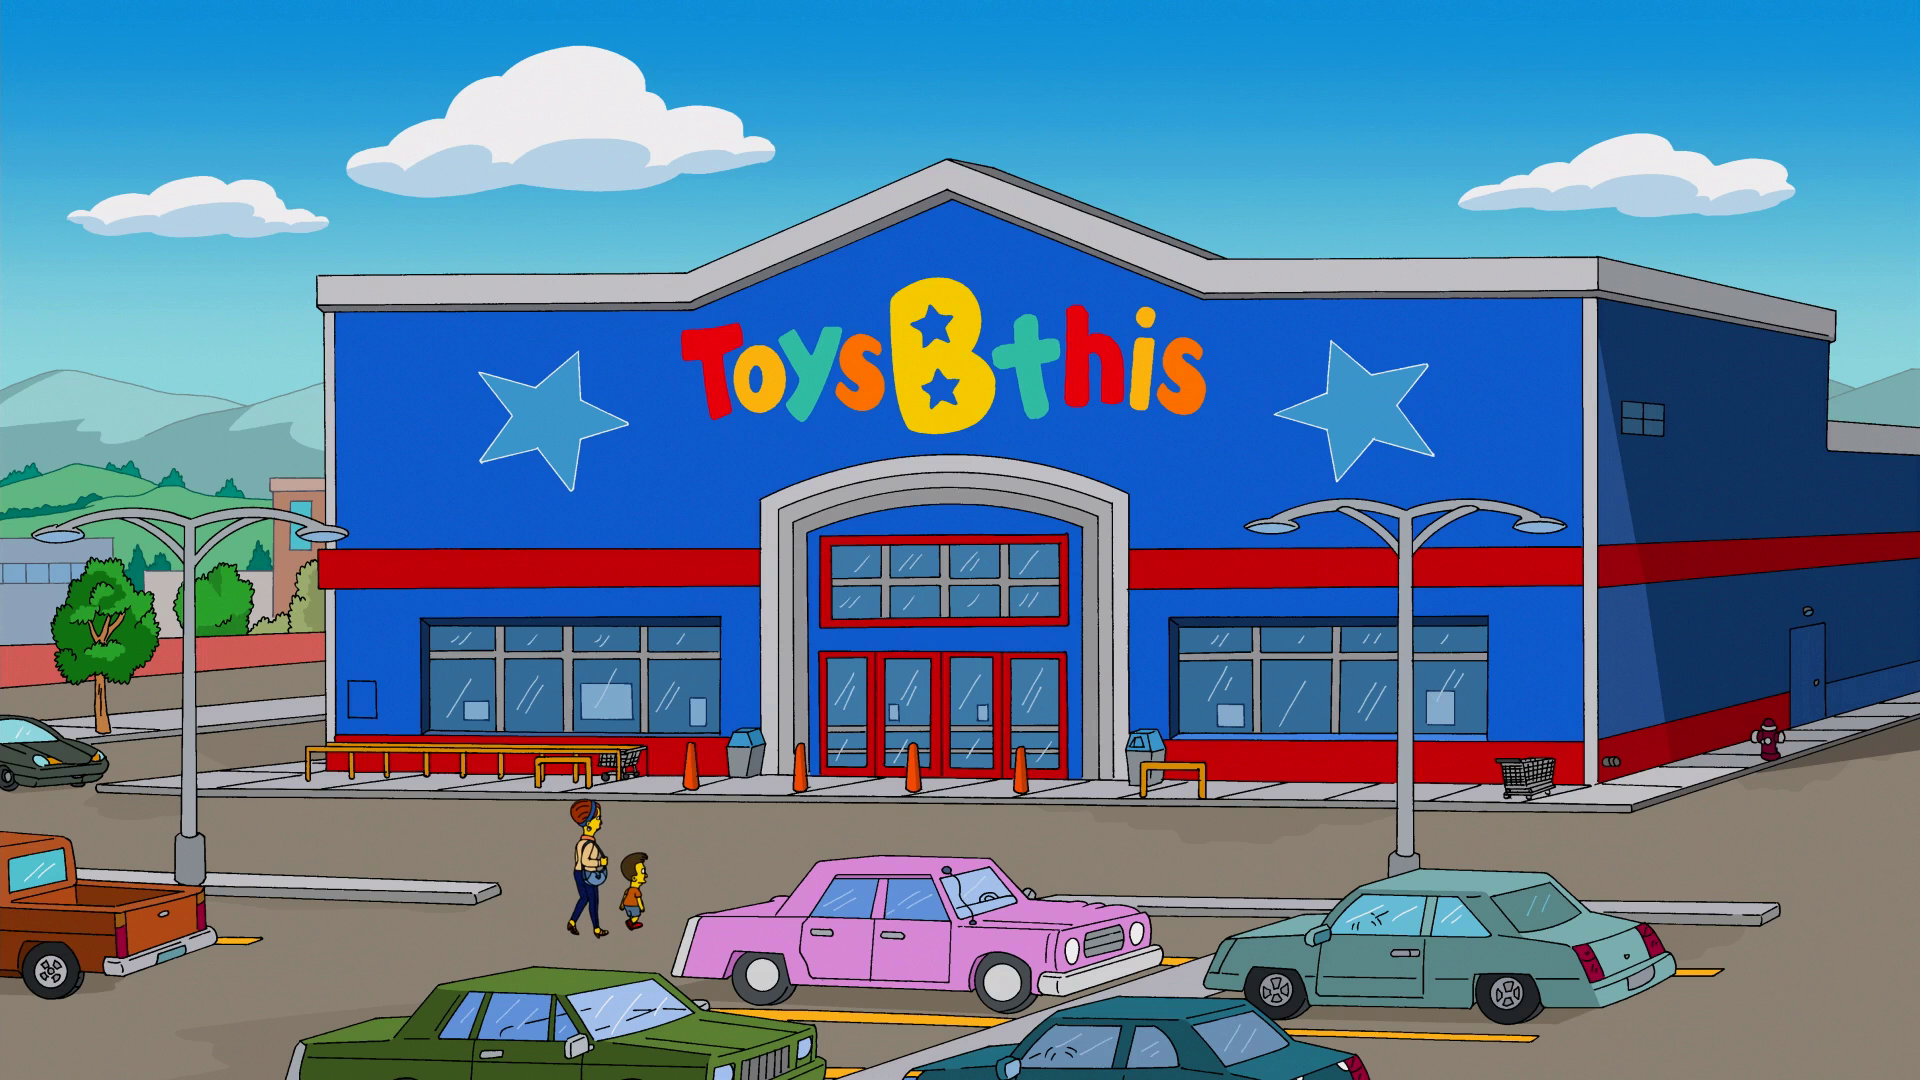 ToysBthis.png